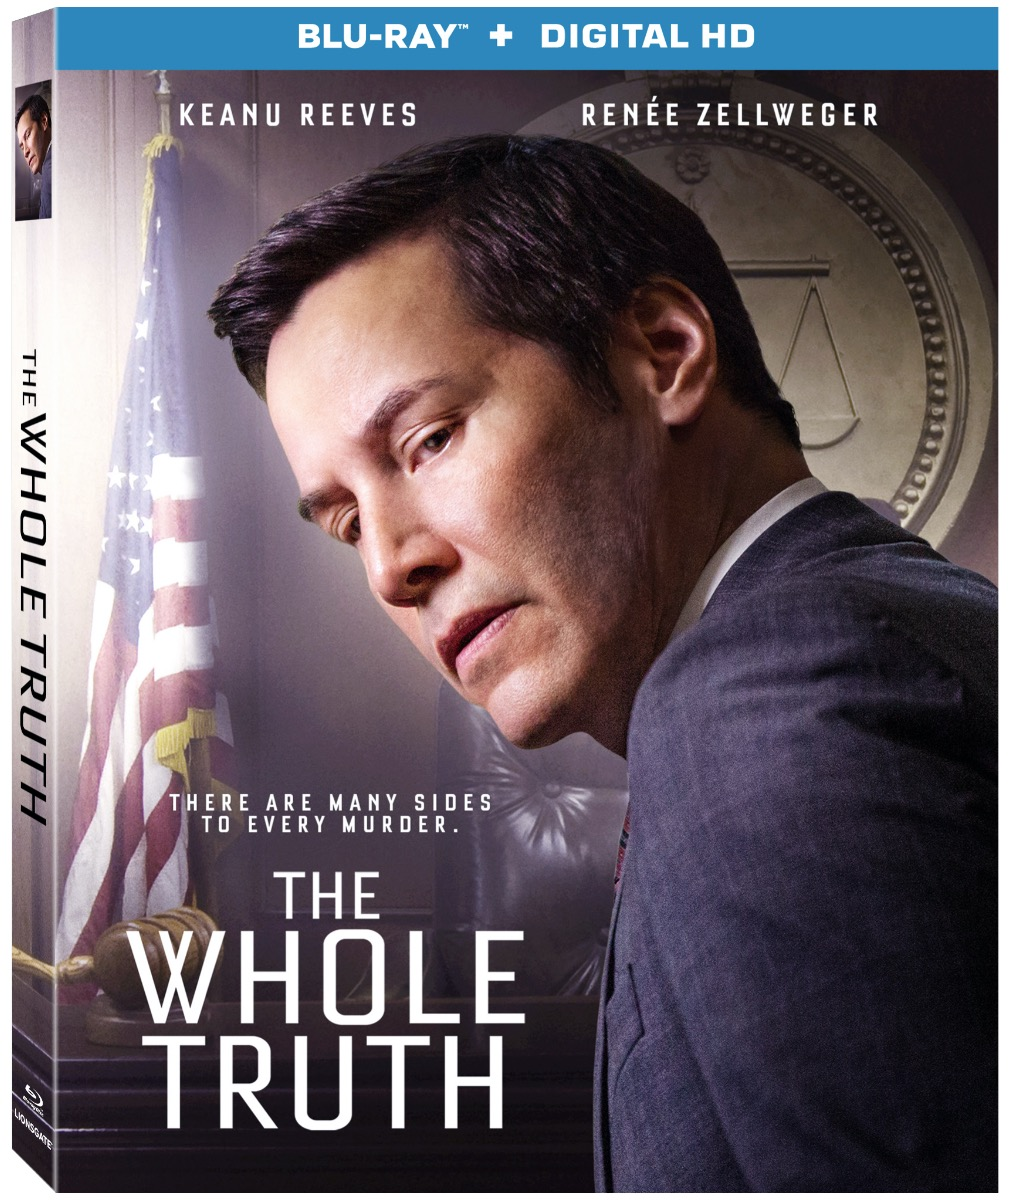 The Whole Truth Blu-ray Review